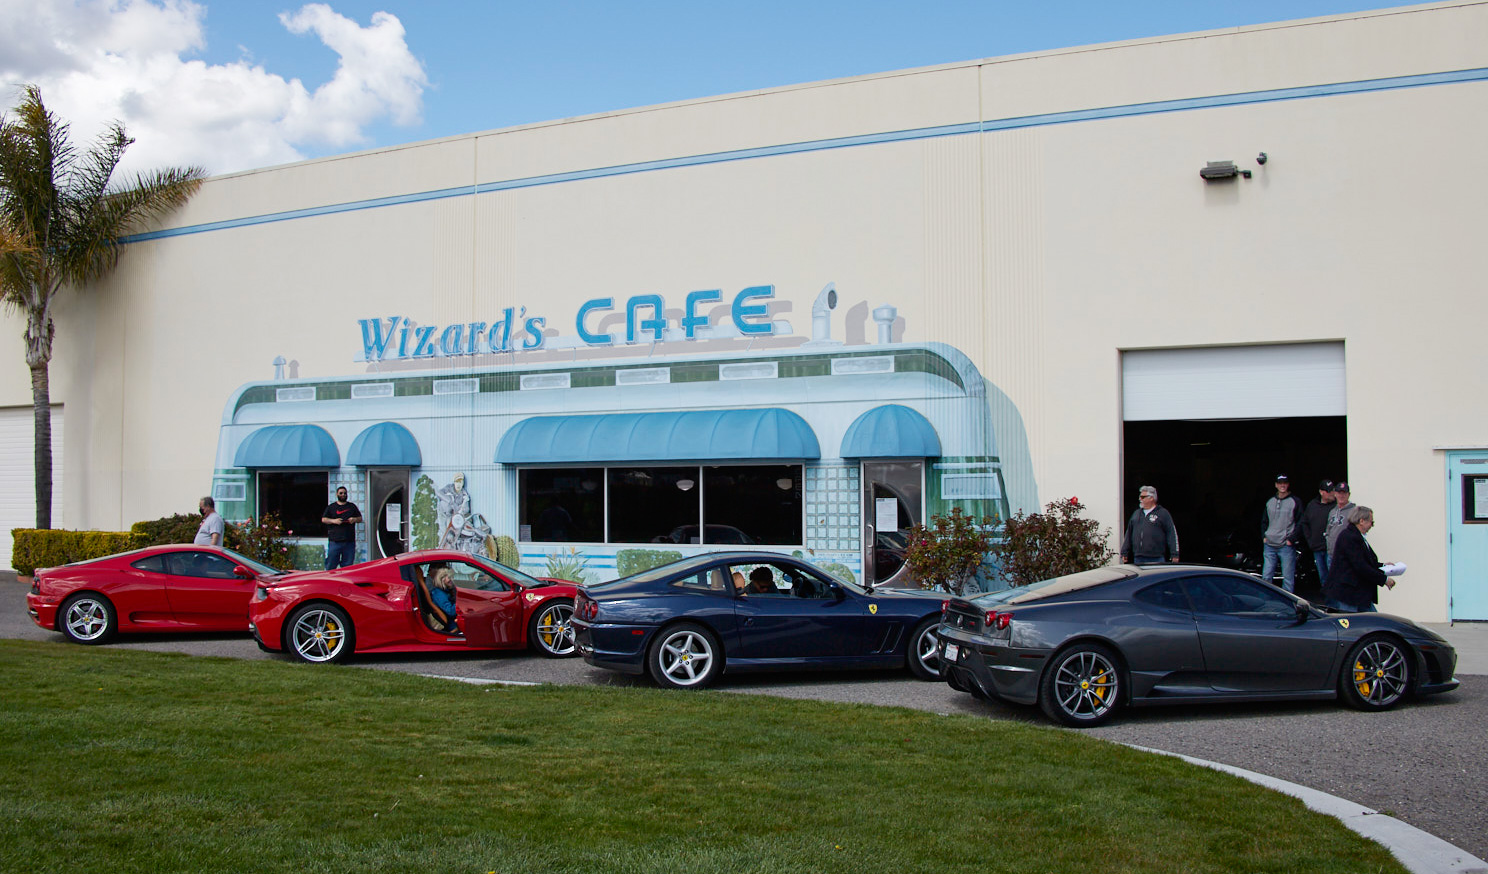 Saturday Wizard's Cafe